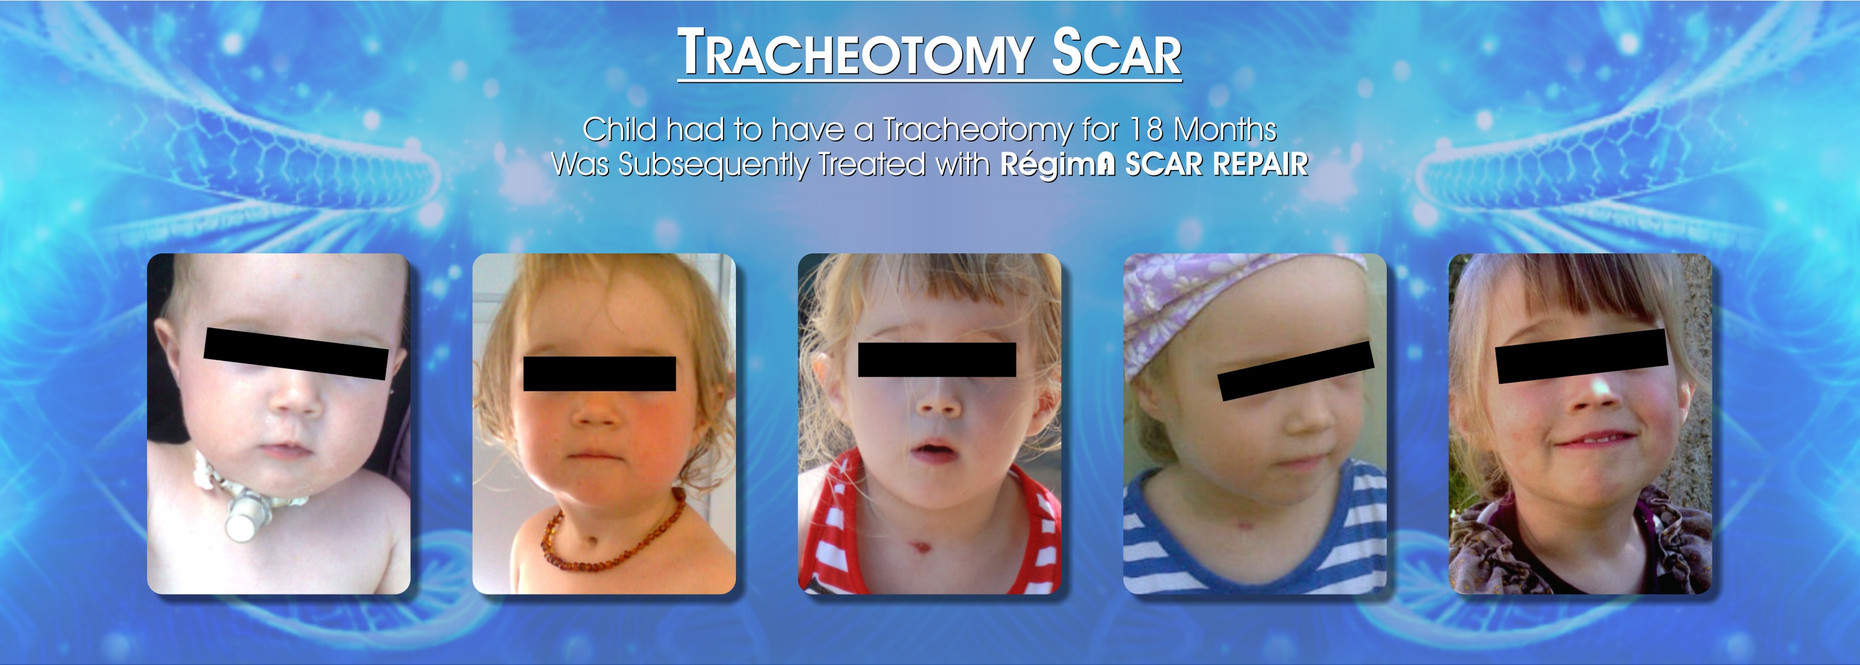 Tracheostomy Scar